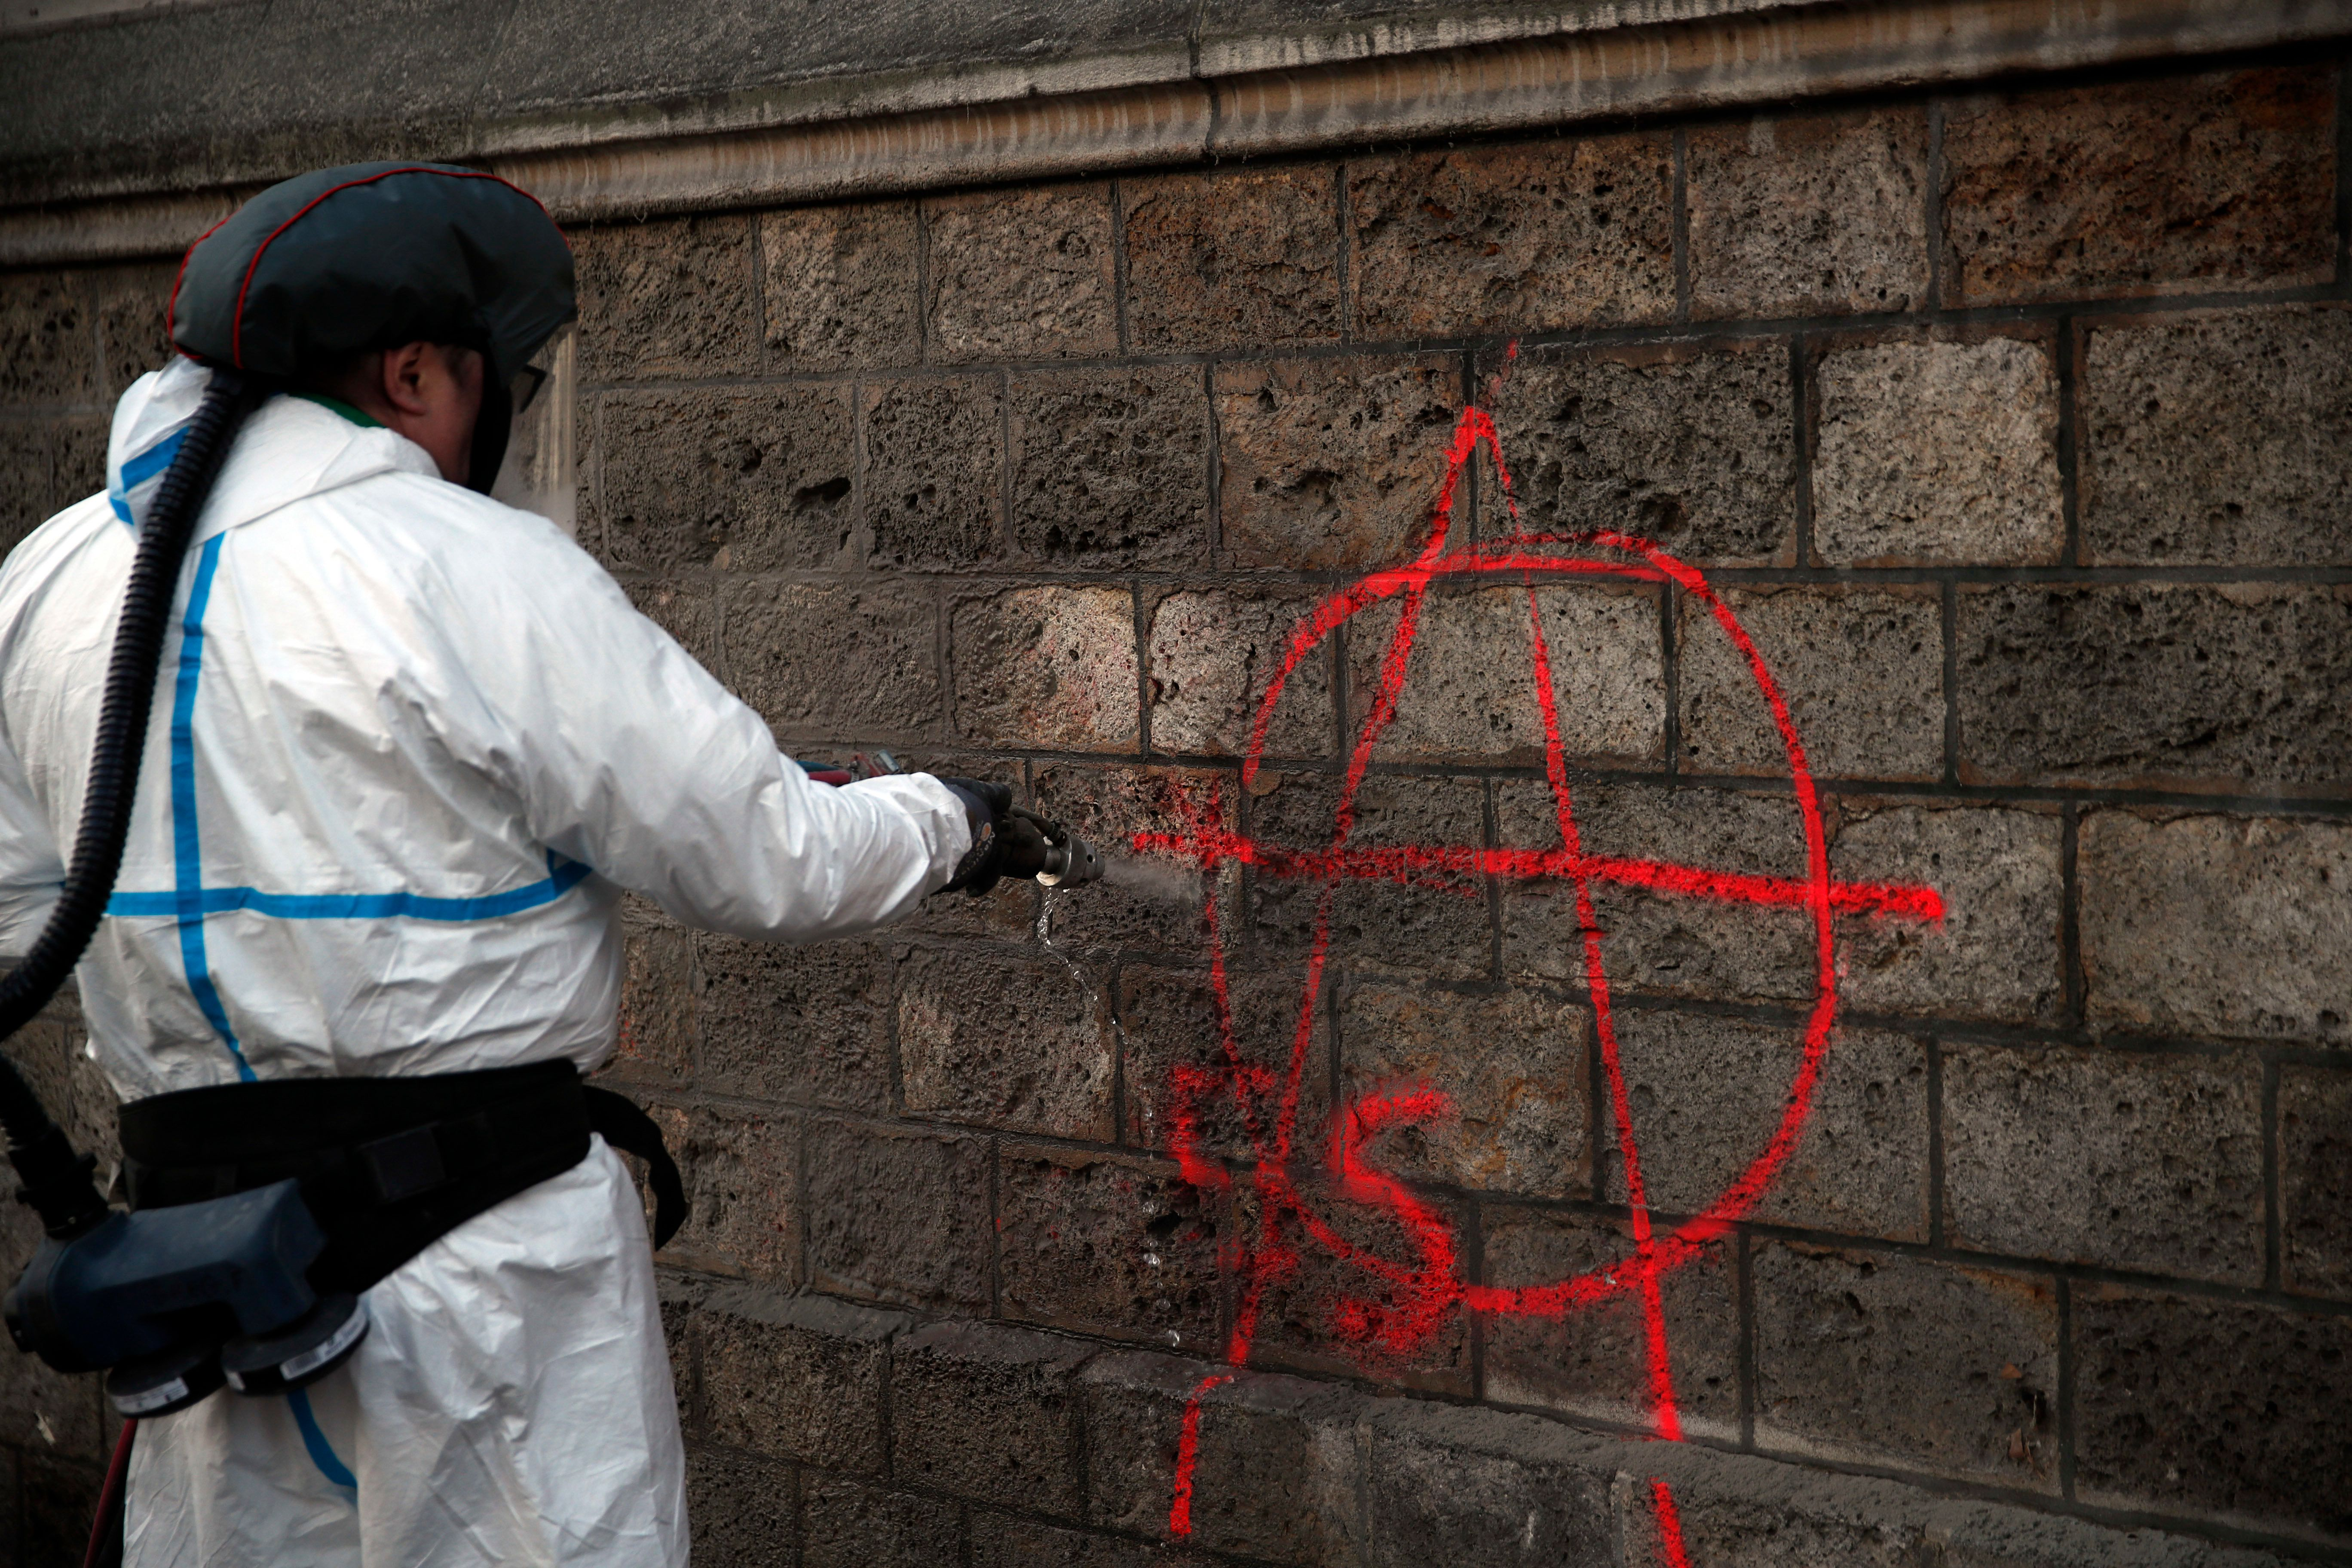 Paris Cleans Up In Aftermath Of Riot As Macron Prepares Address